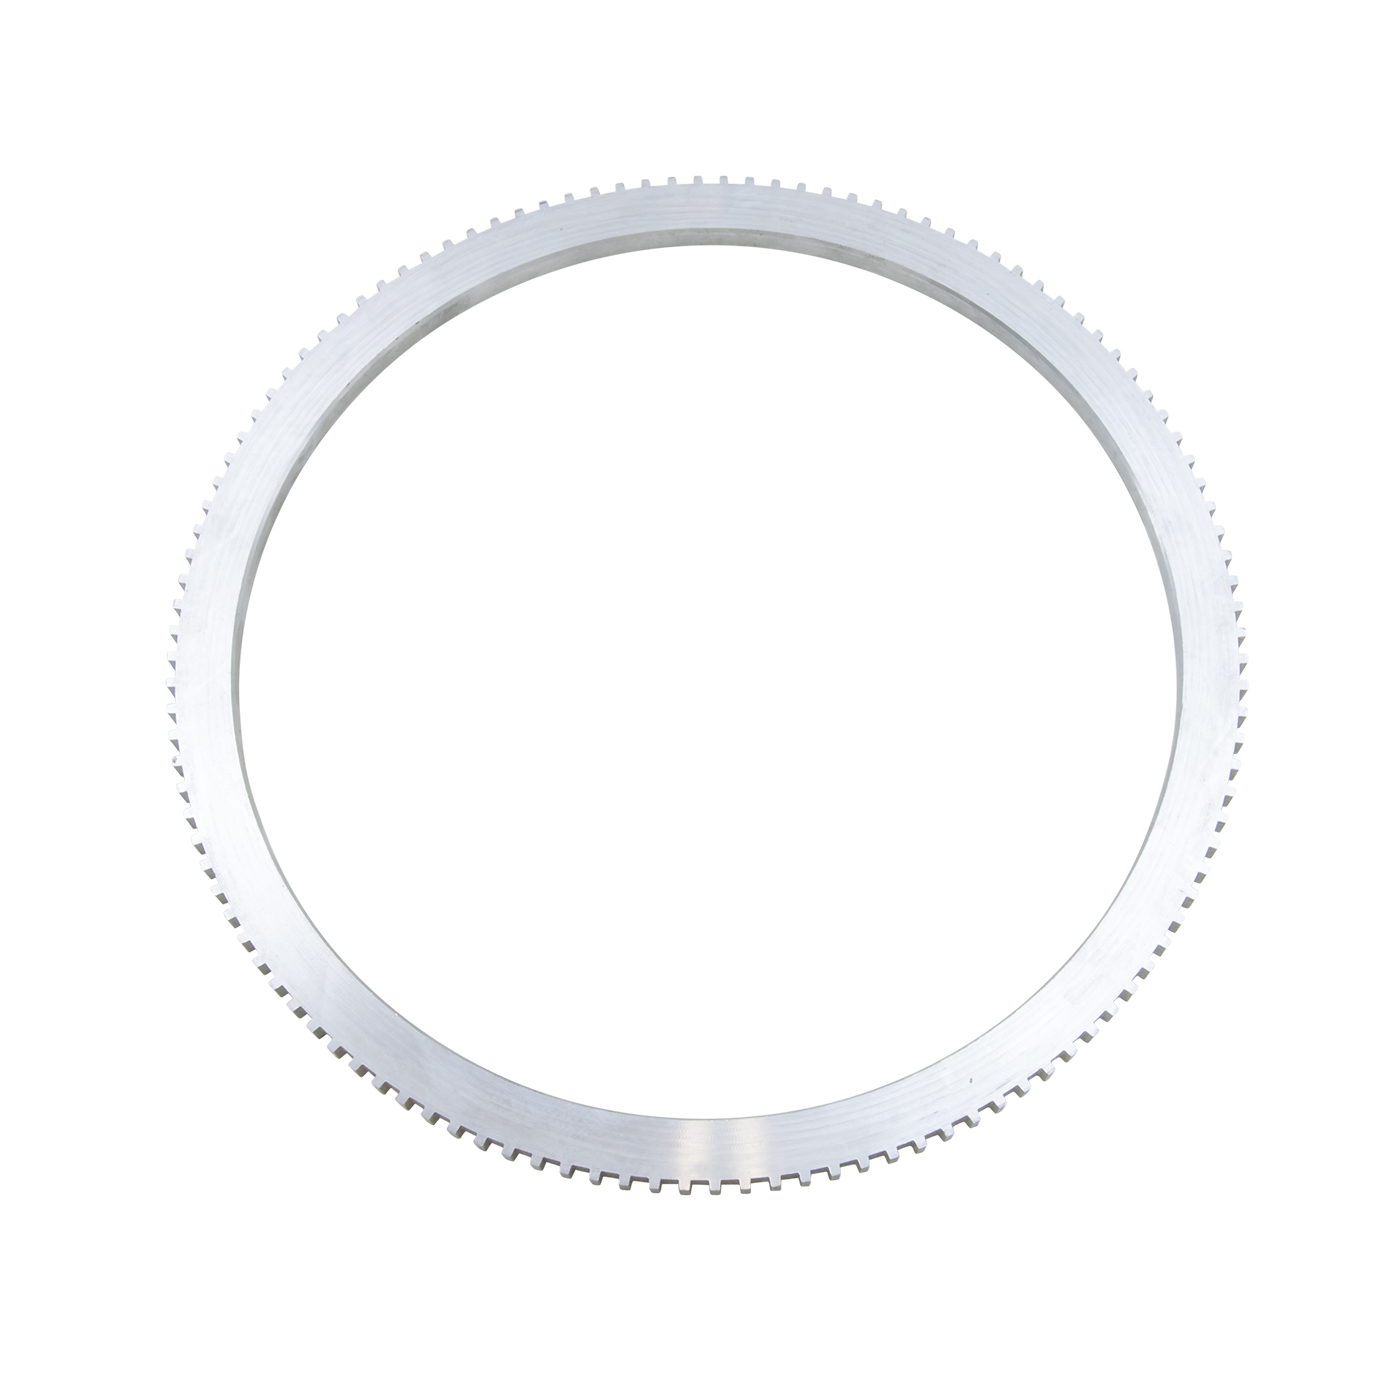 YSPABS-001 - ABS Tone ring for Chrysler 10.5